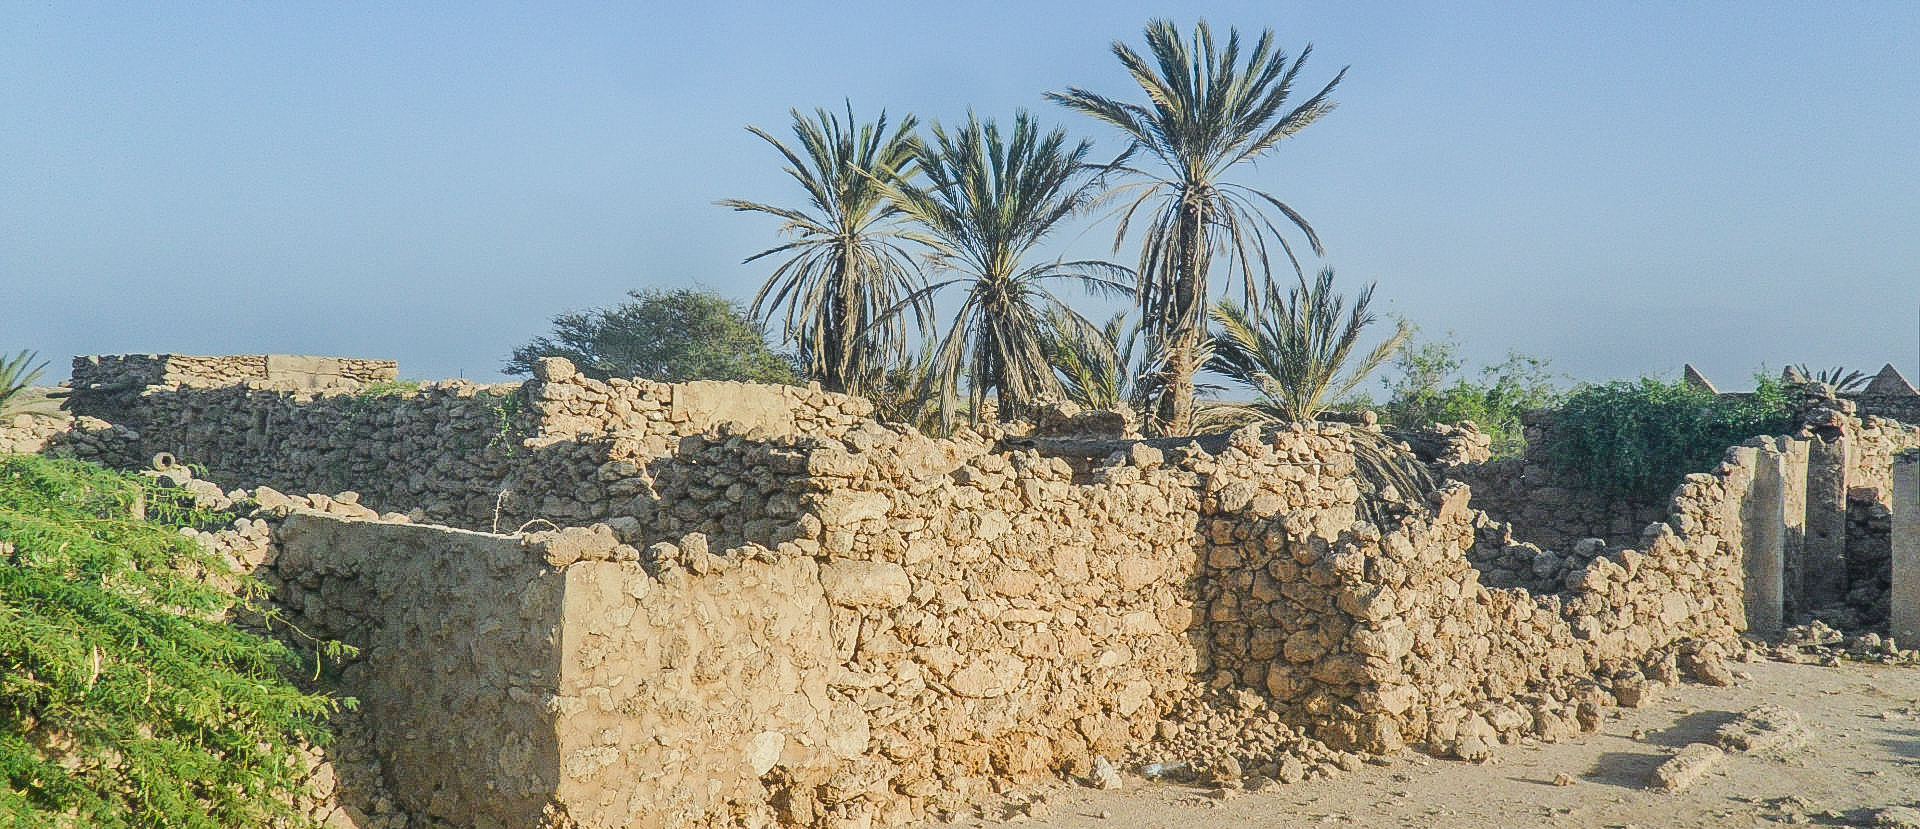 Al-Qassar village in Farasan Al-Kebir (photo: Florent Egal)